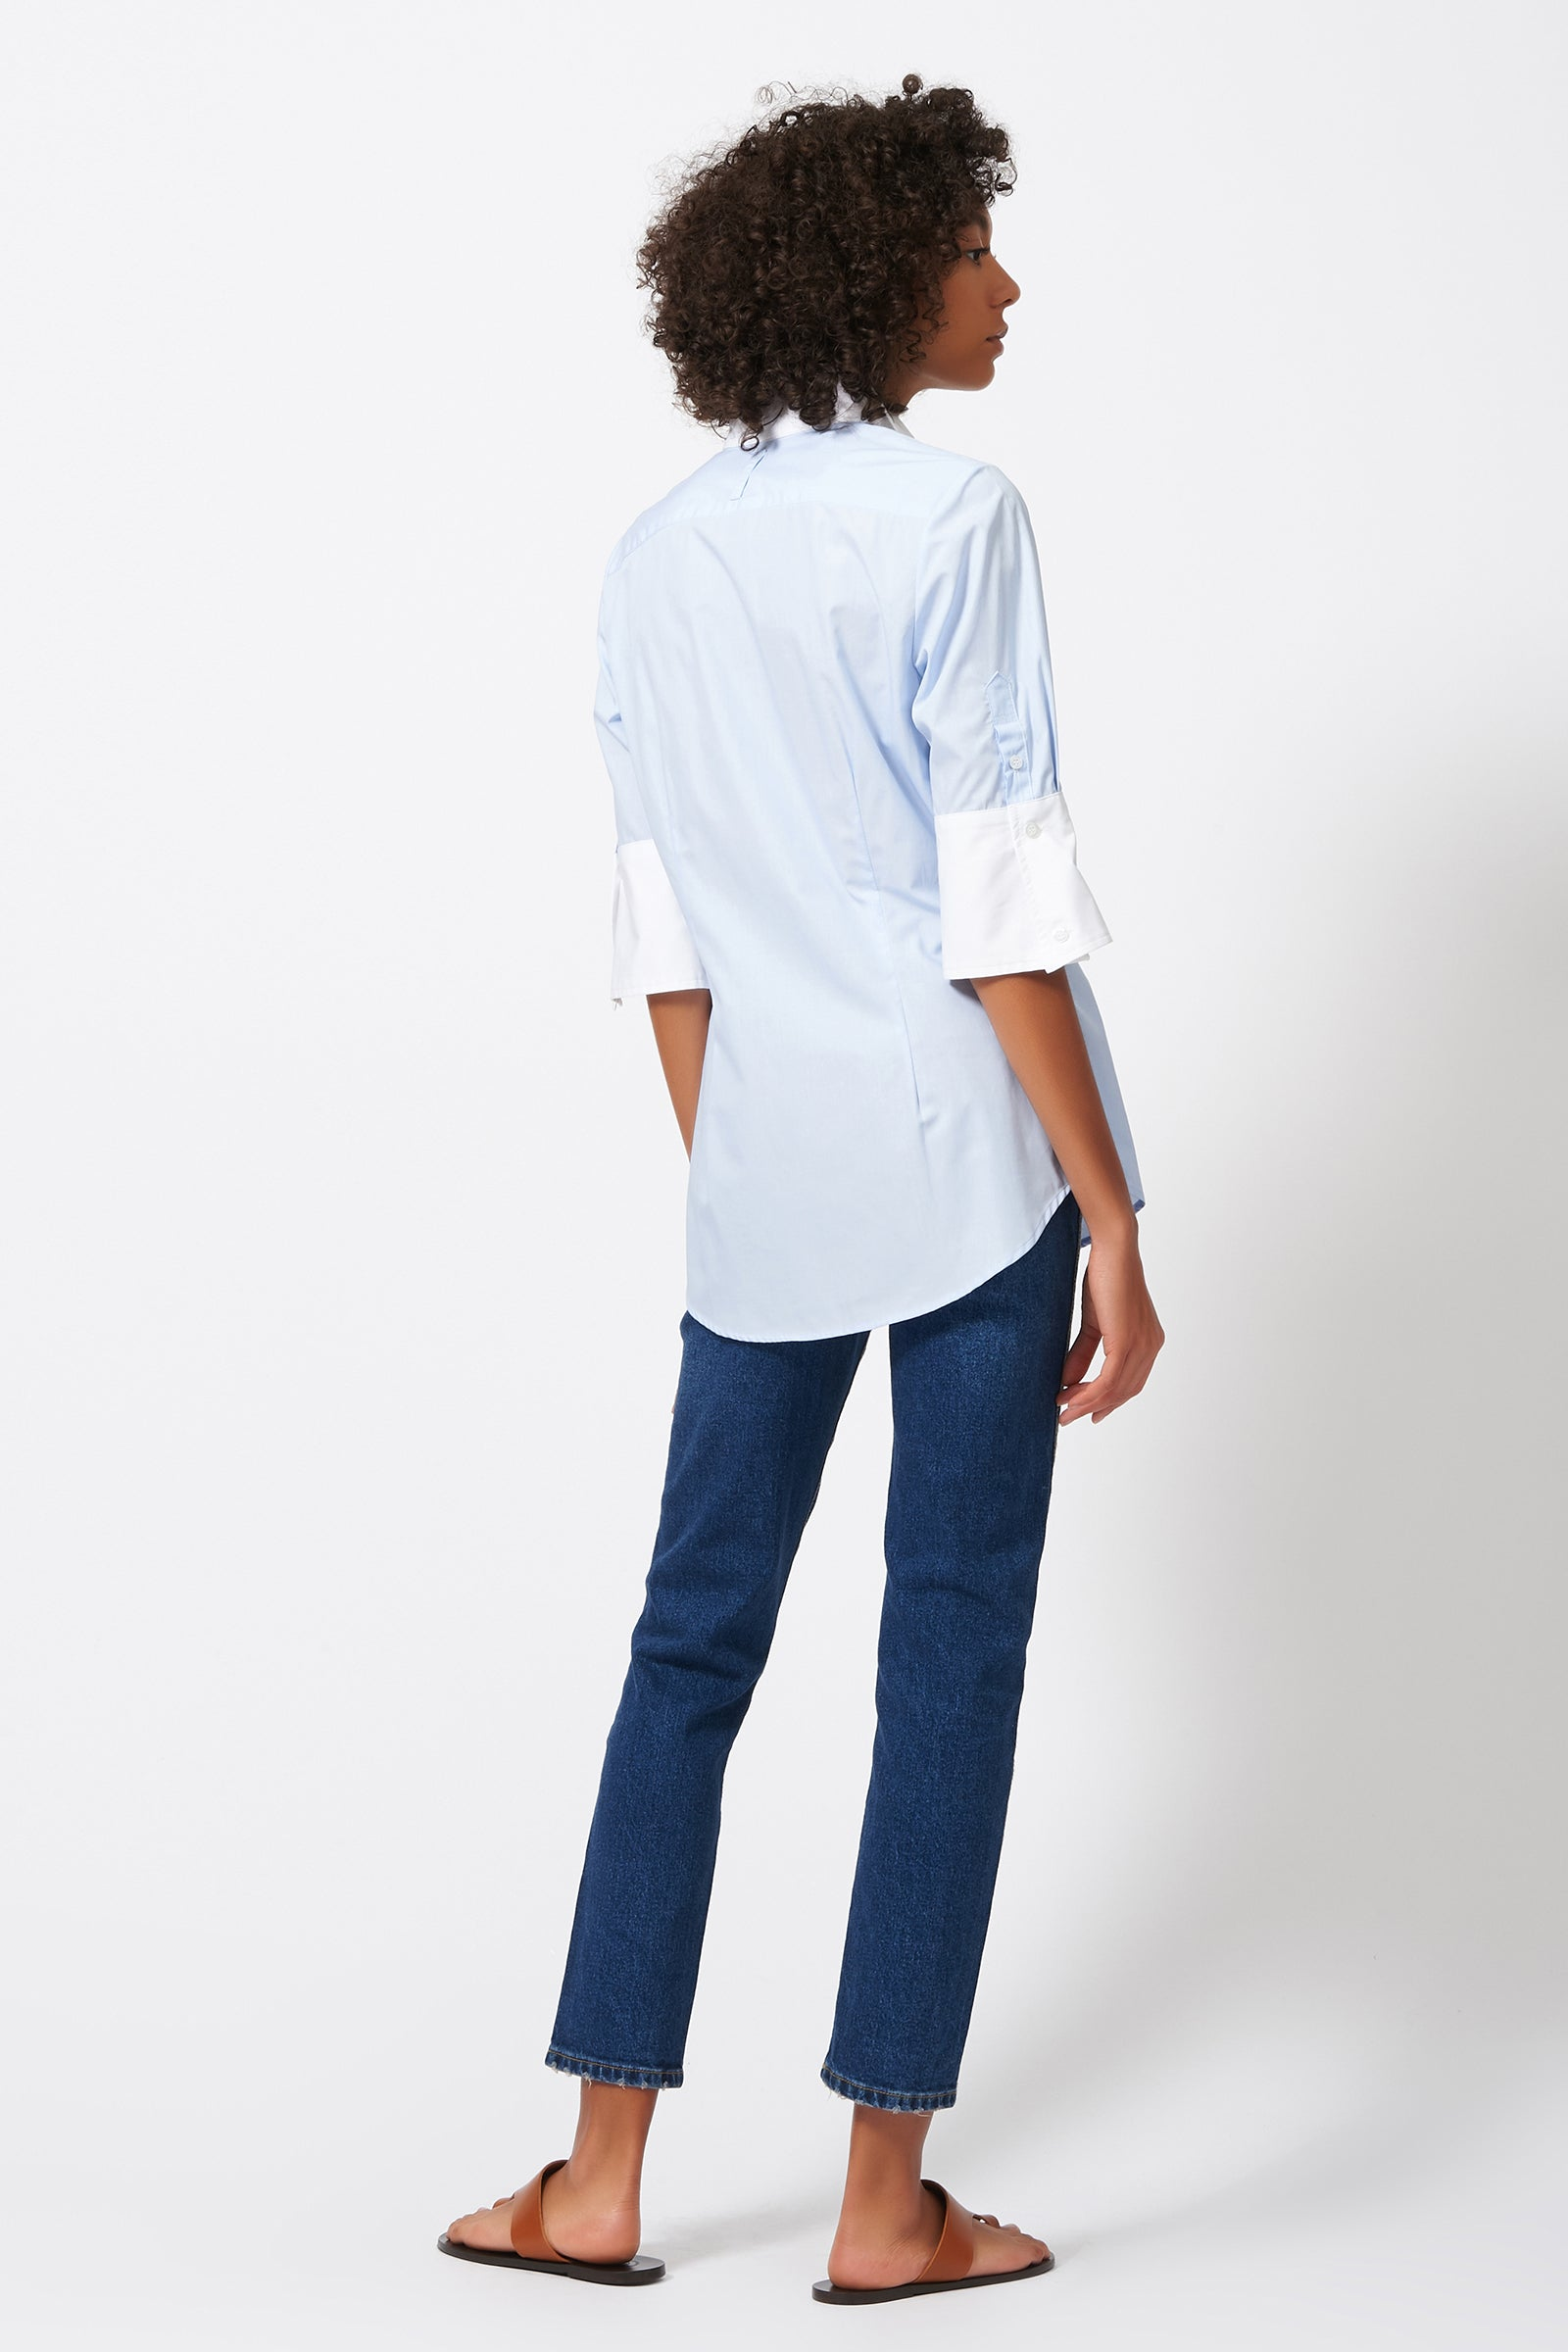 Kal Rieman Double Collar Shirt in Oxford and White Cotton Poplin on Model Front View